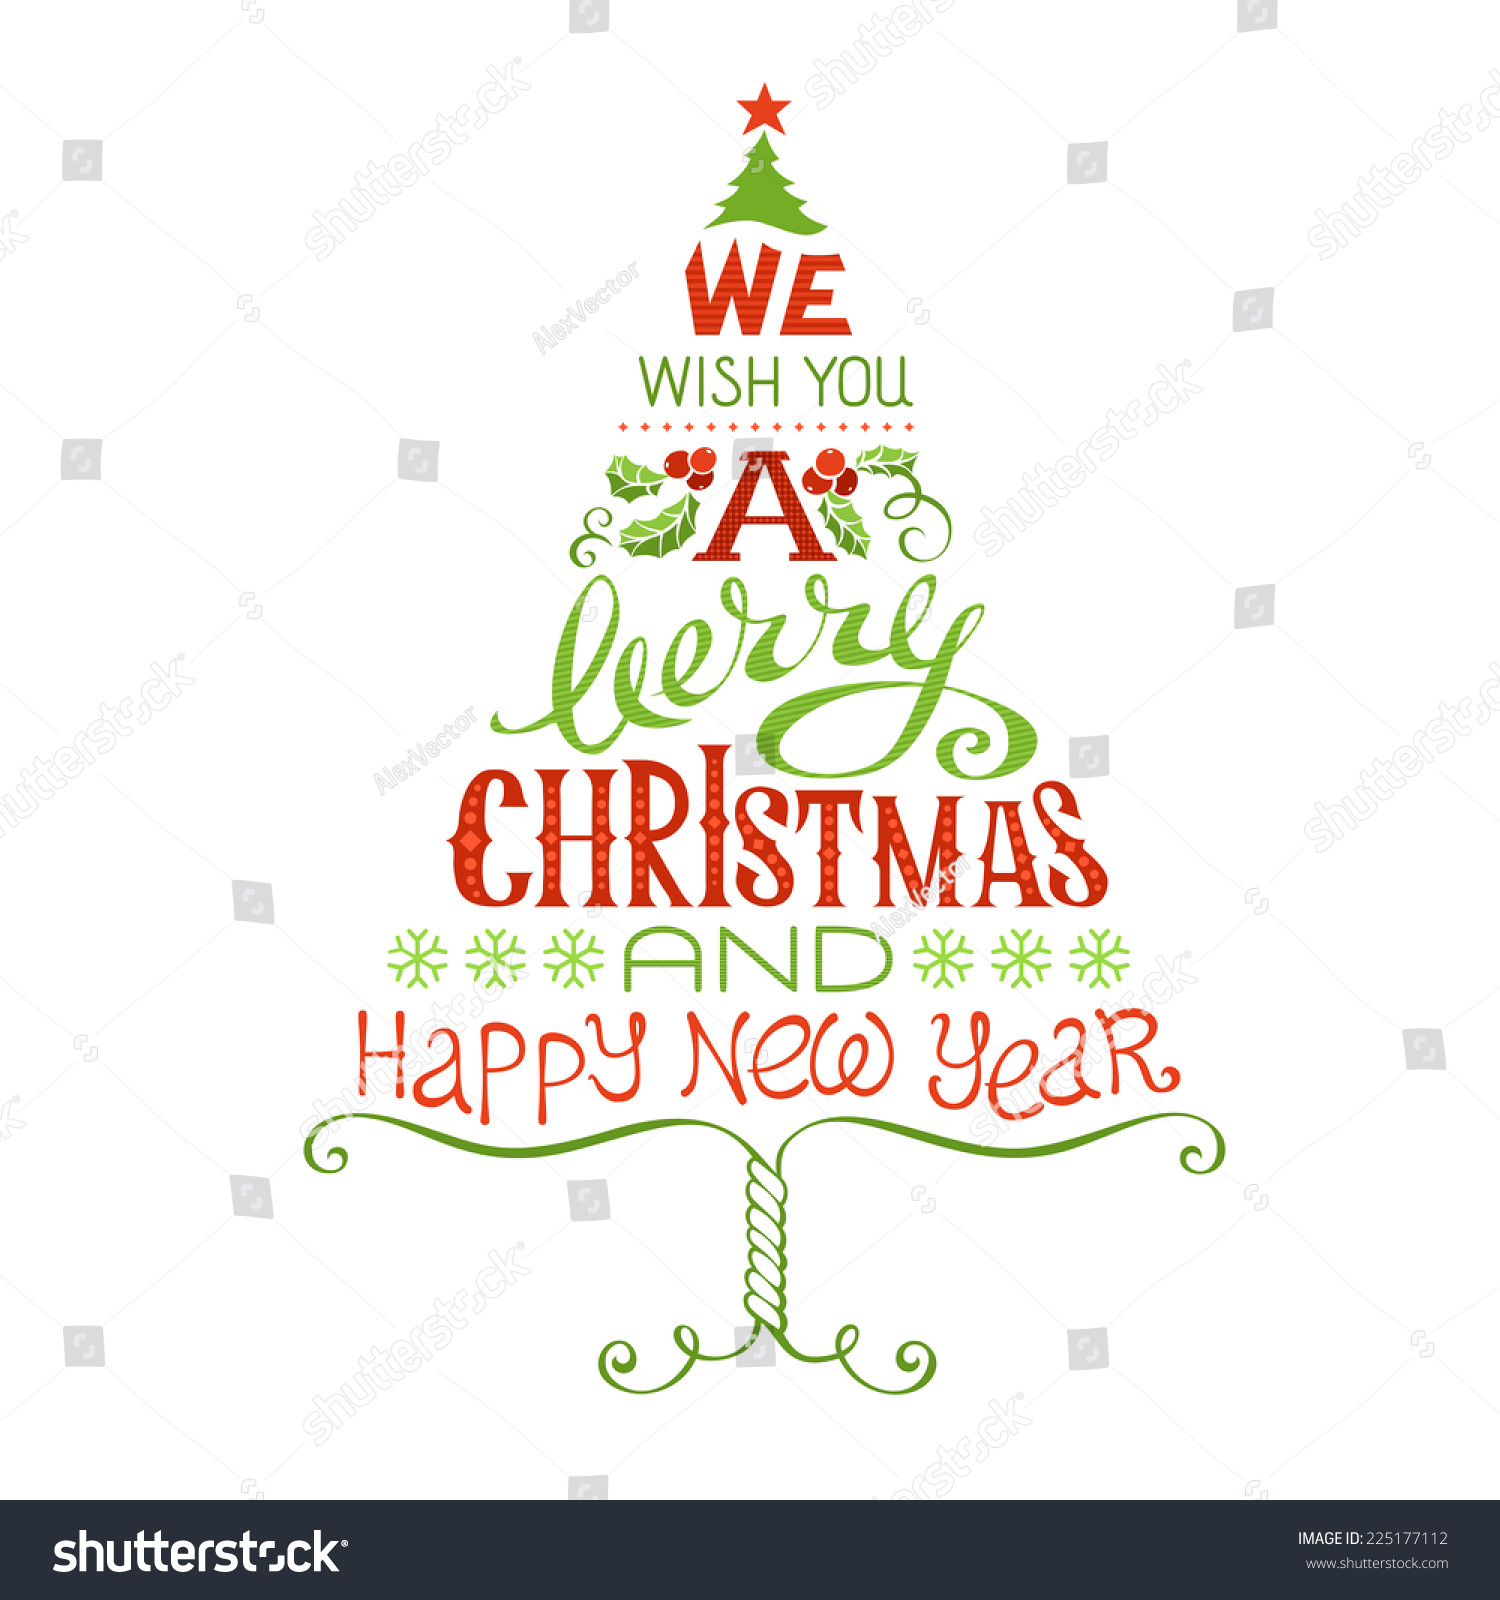 We Wish You Merry Christmas Happy Vector de stock (libre de regalías ...